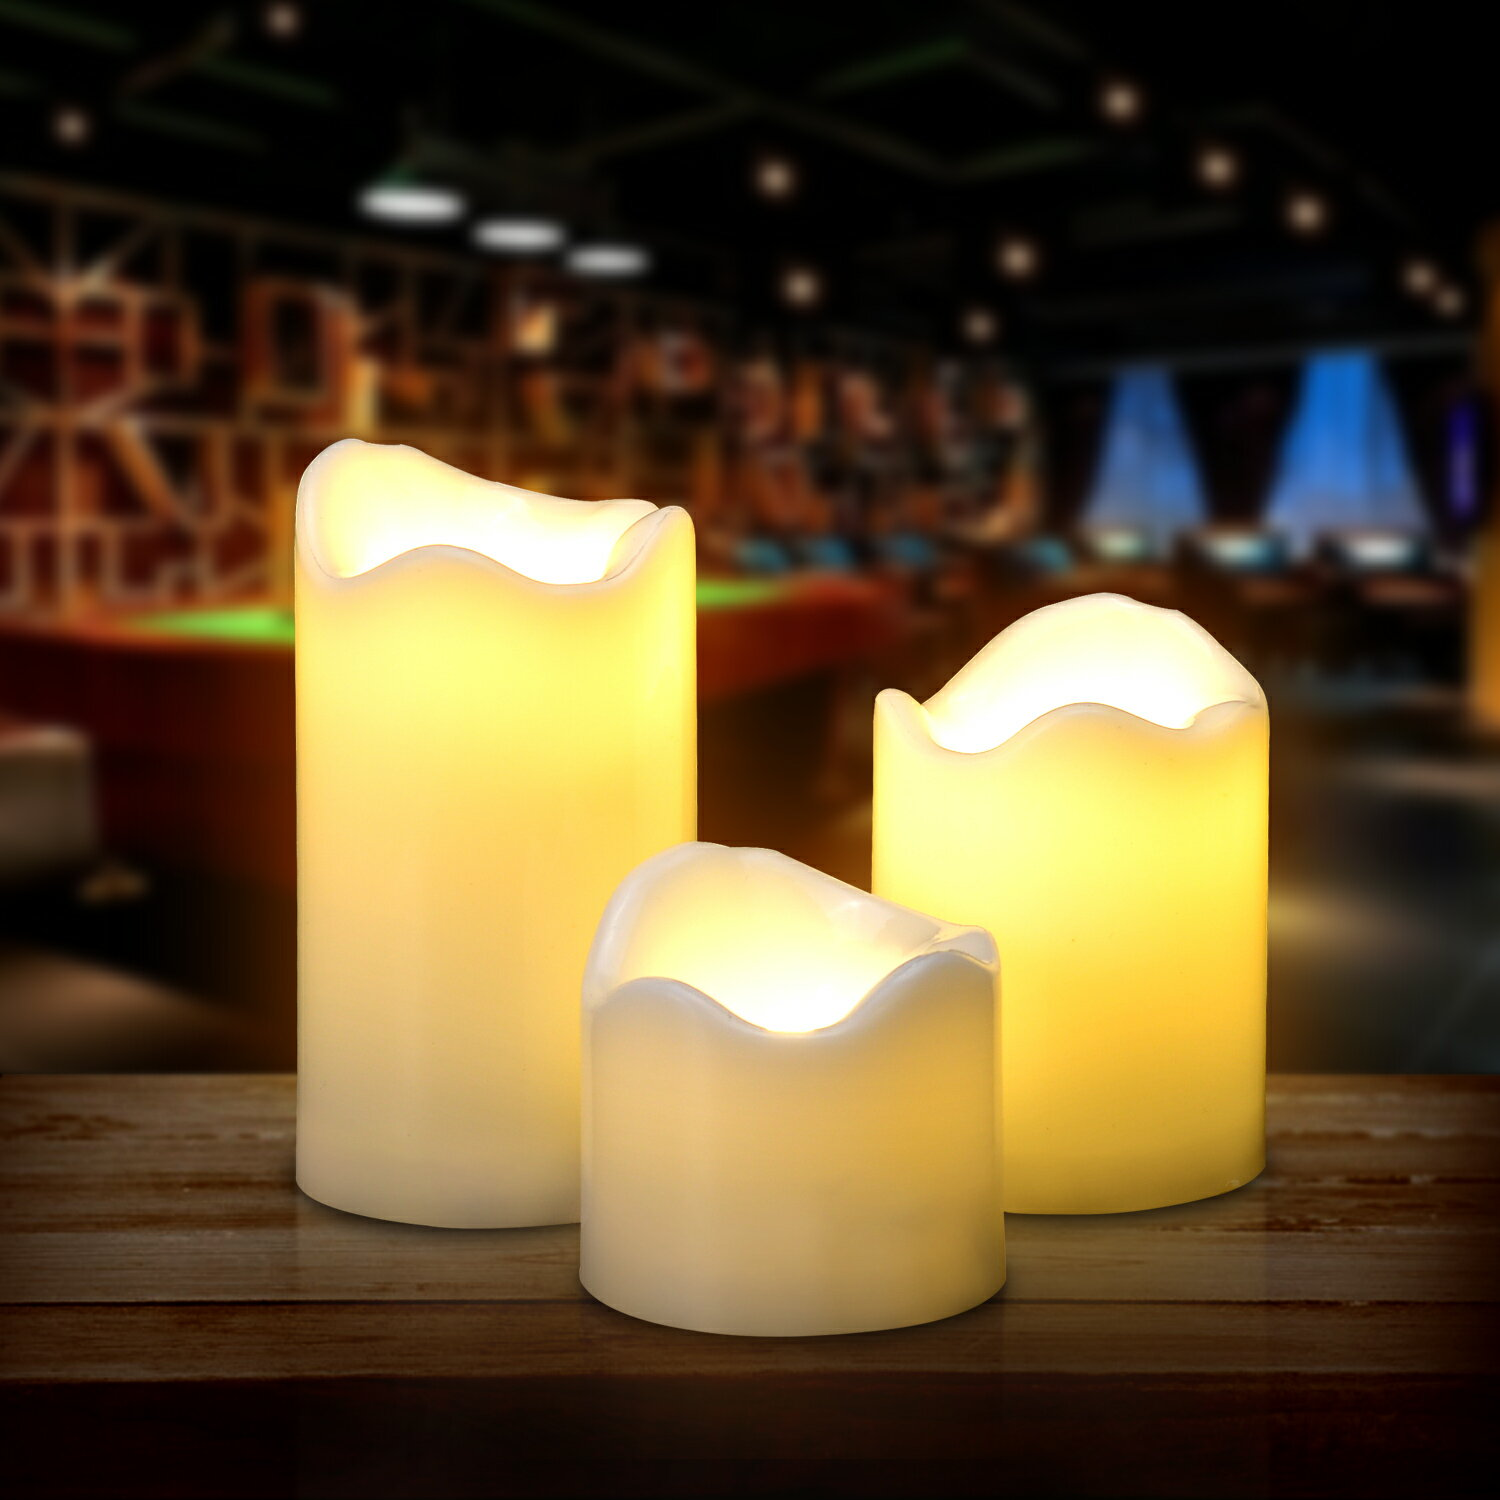 LED Candles Battery Operated Flameless Flickering smokeless 3 PCS/set Premium Votive Candles for Wedding/Party Decorations warm white 1